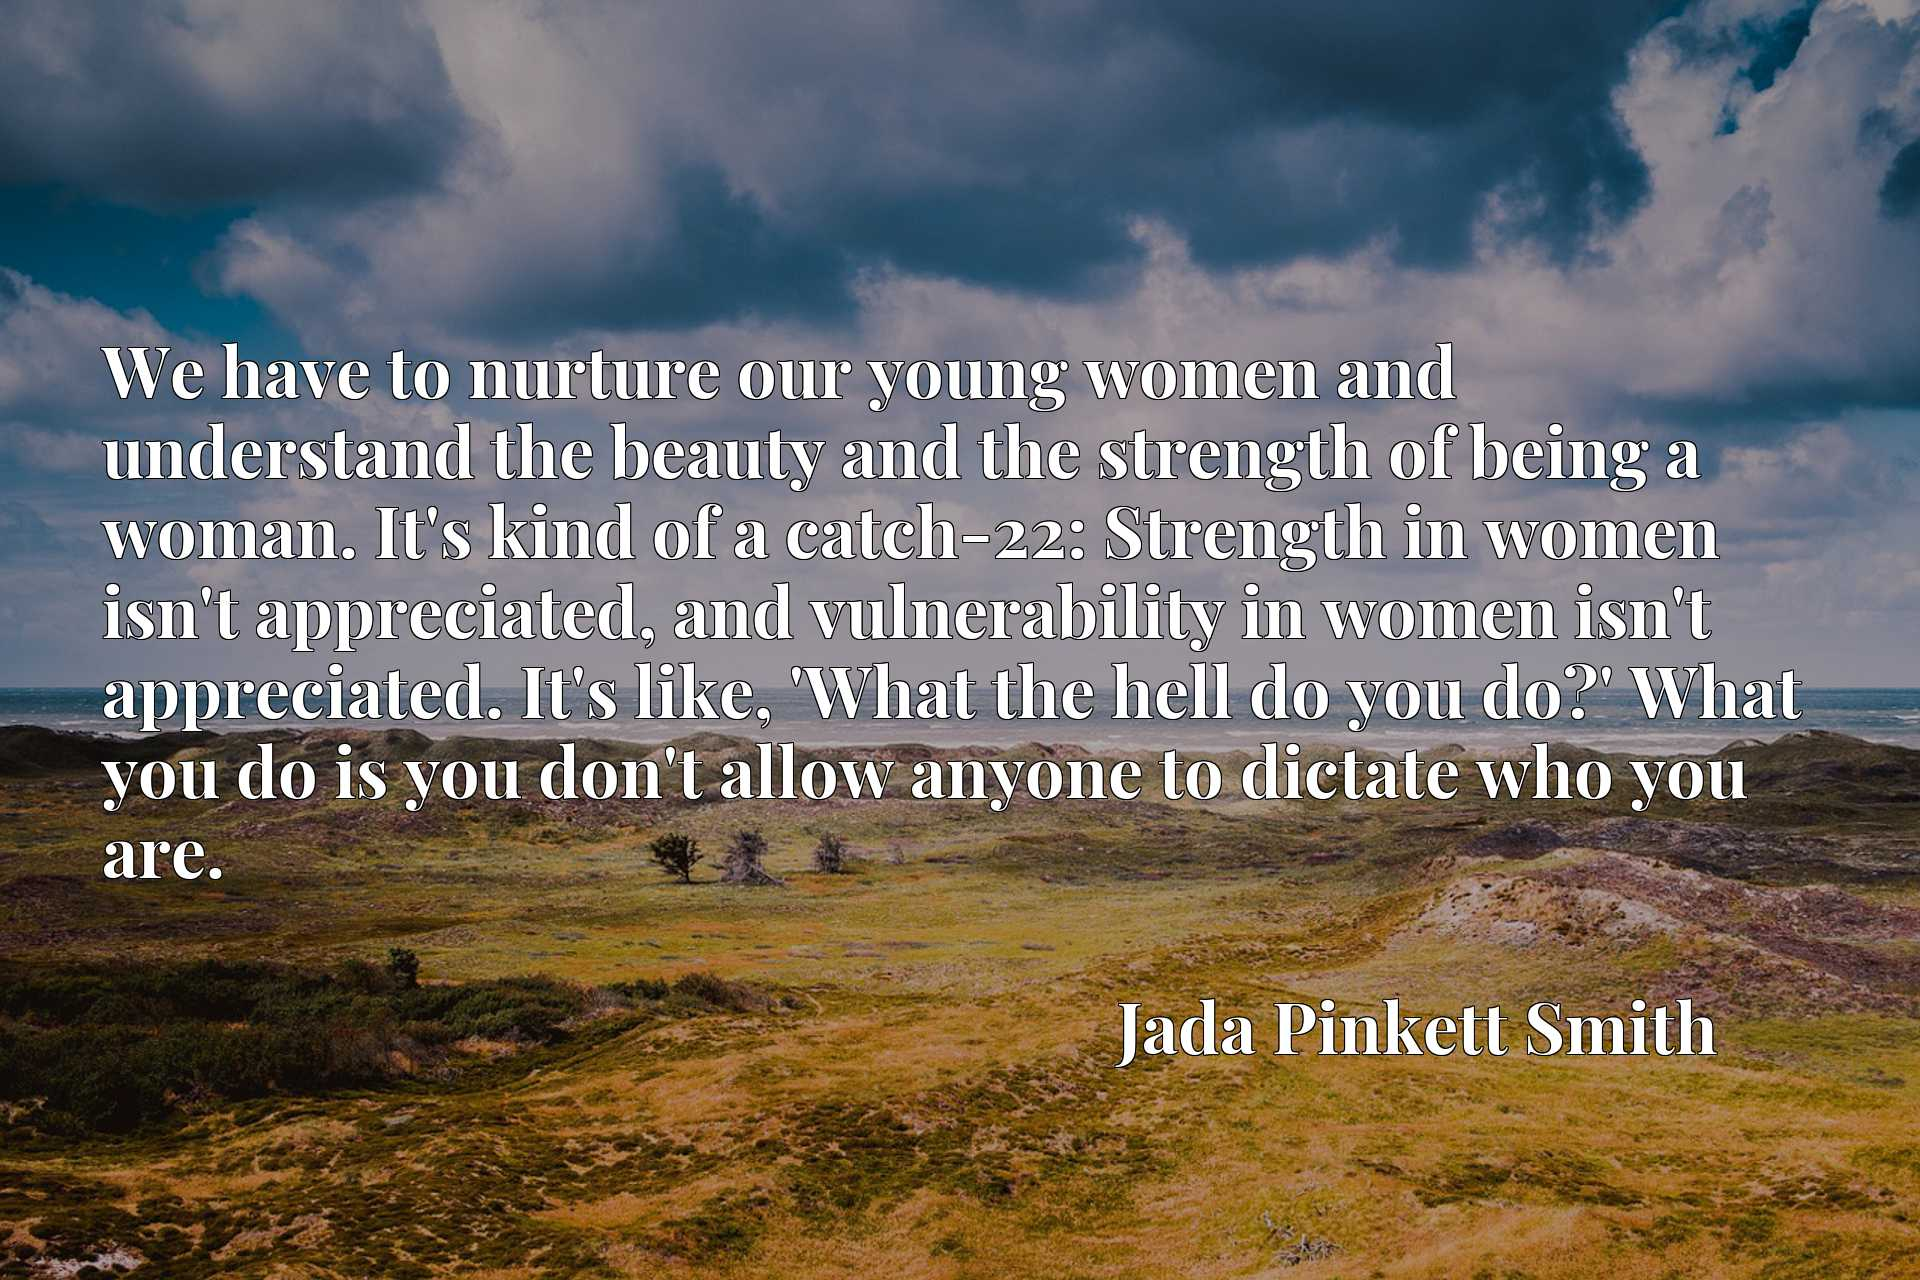 We have to nurture our young women and understand the beauty and the strength of being a woman. It's kind of a catch-22: Strength in women isn't appreciated, and vulnerability in women isn't appreciated. It's like, 'What the hell do you do?' What you do is you don't allow anyone to dictate who you are.